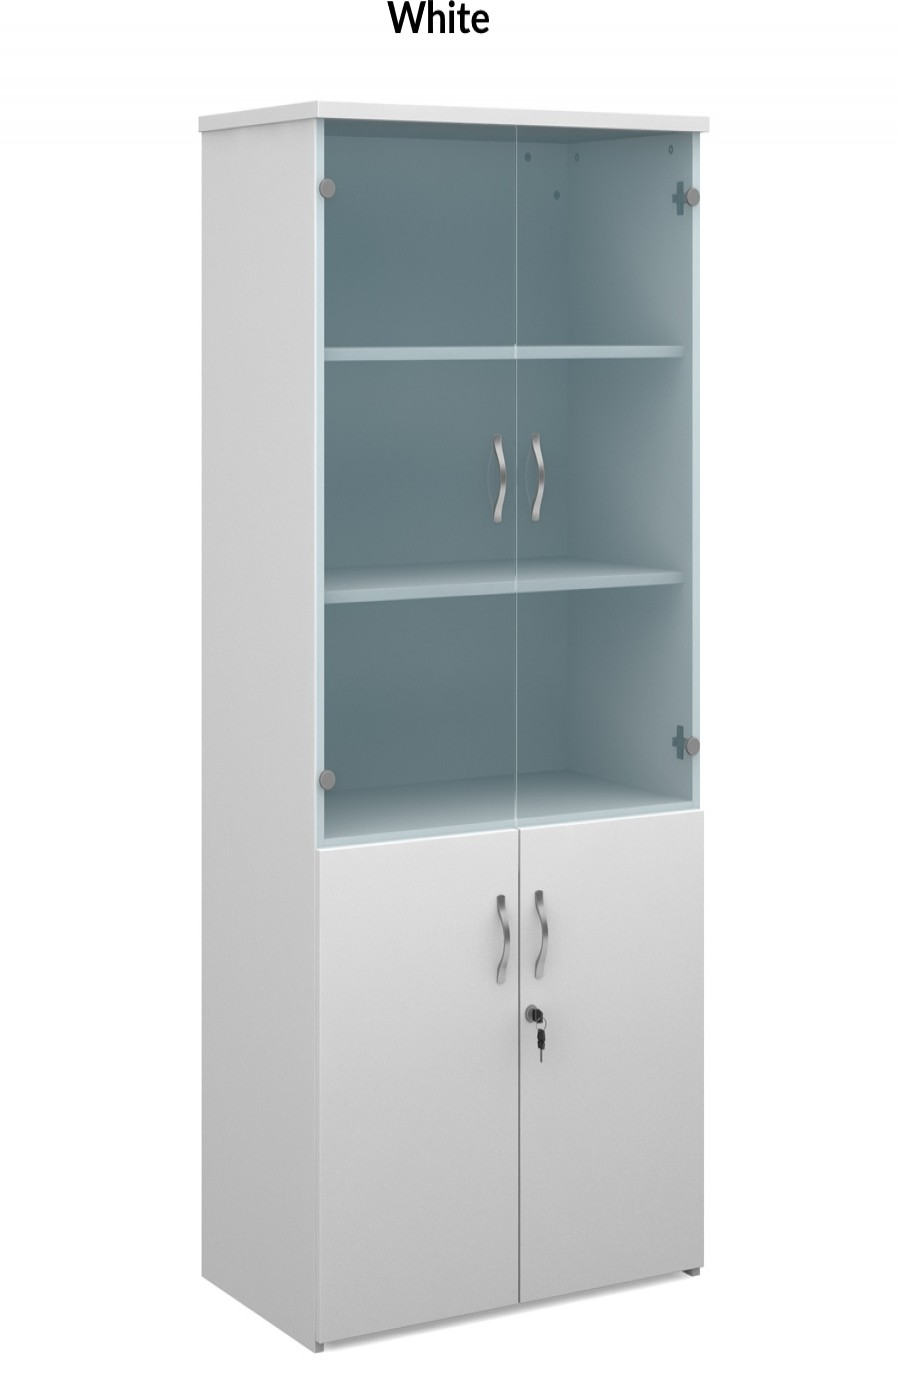 1790mm High Combination Unit R1790COM with Top Glass Doors